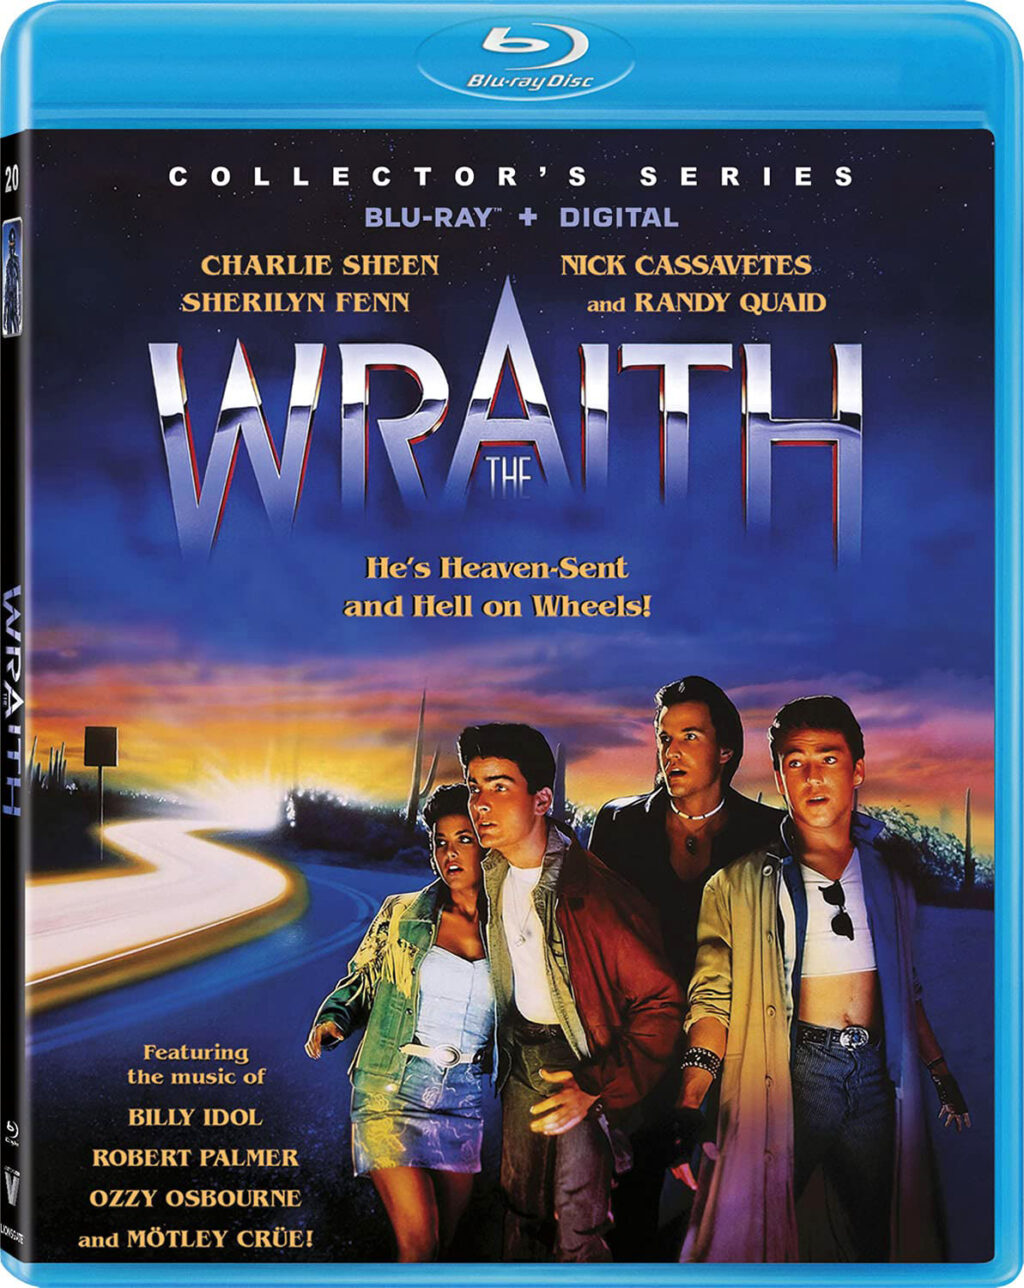 he Wraith Blu ray 1024x1288 - THE WRAITH with Charlie Sheen Hits on Blu-ray on July 20th